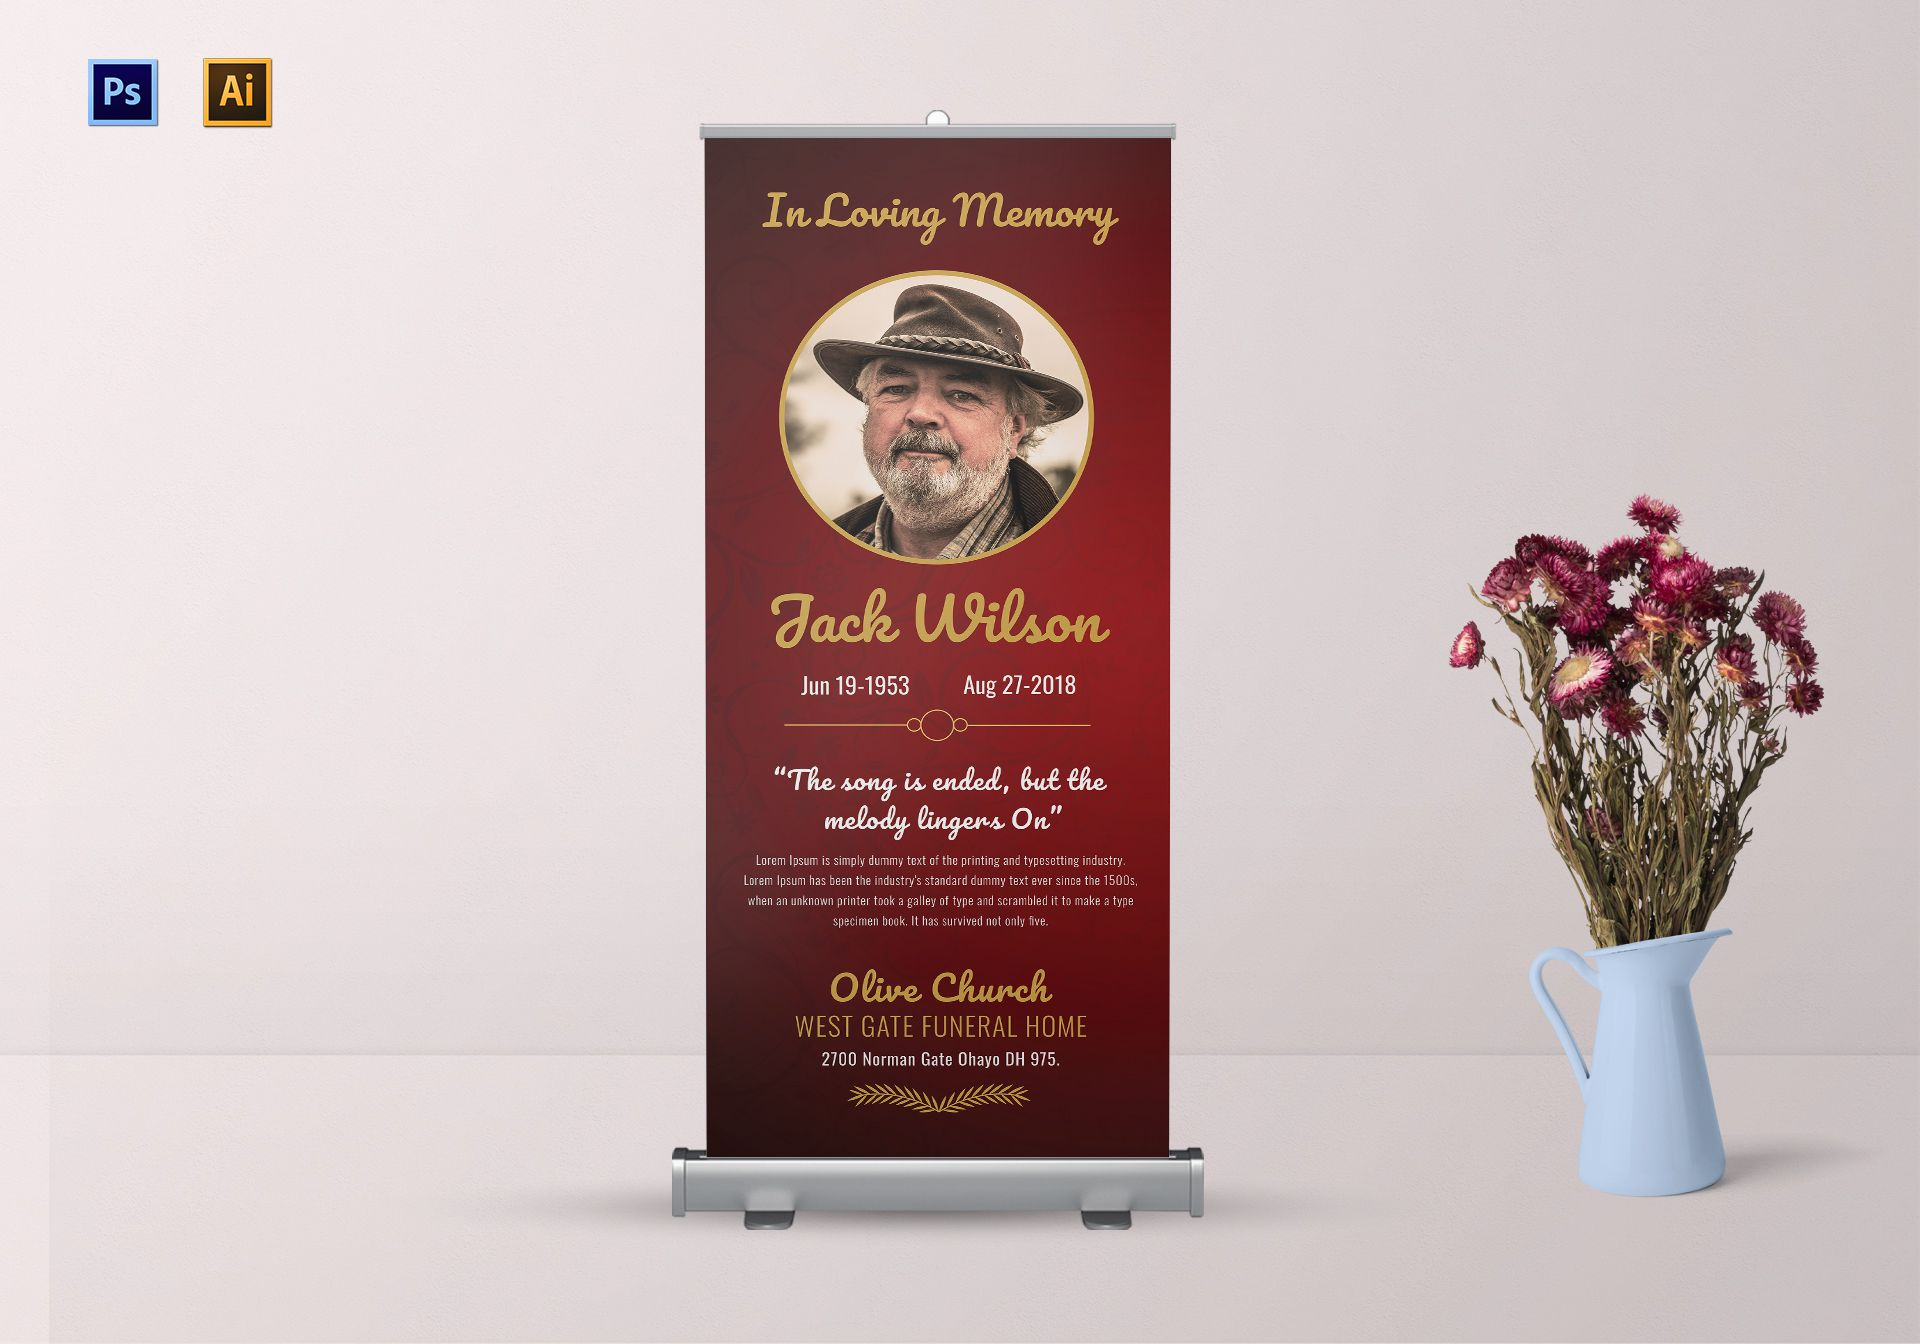 Funeral Invitation Roll-up Banner